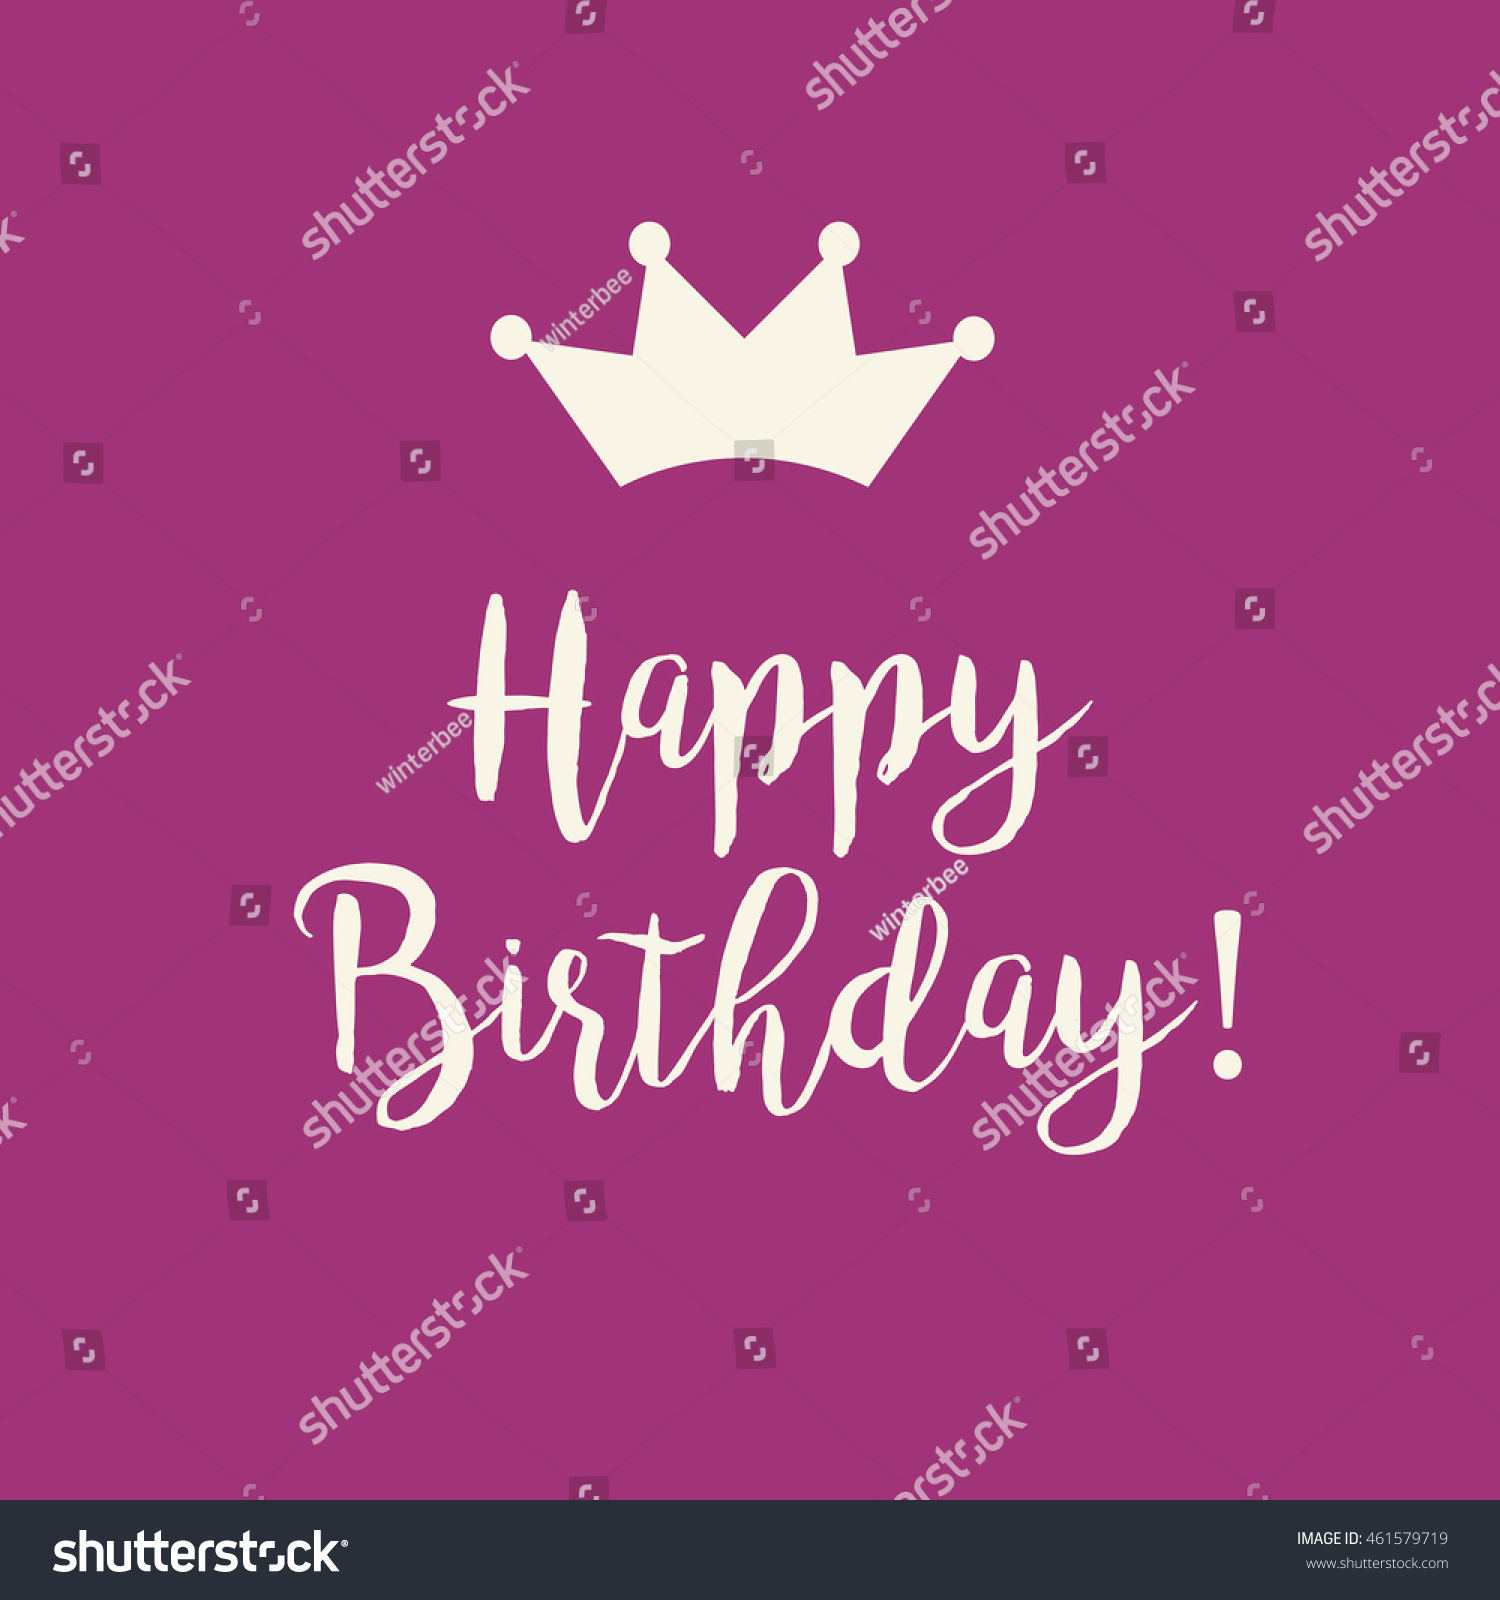 Cute Happy Birthday Card Text Princess Stock Illustration